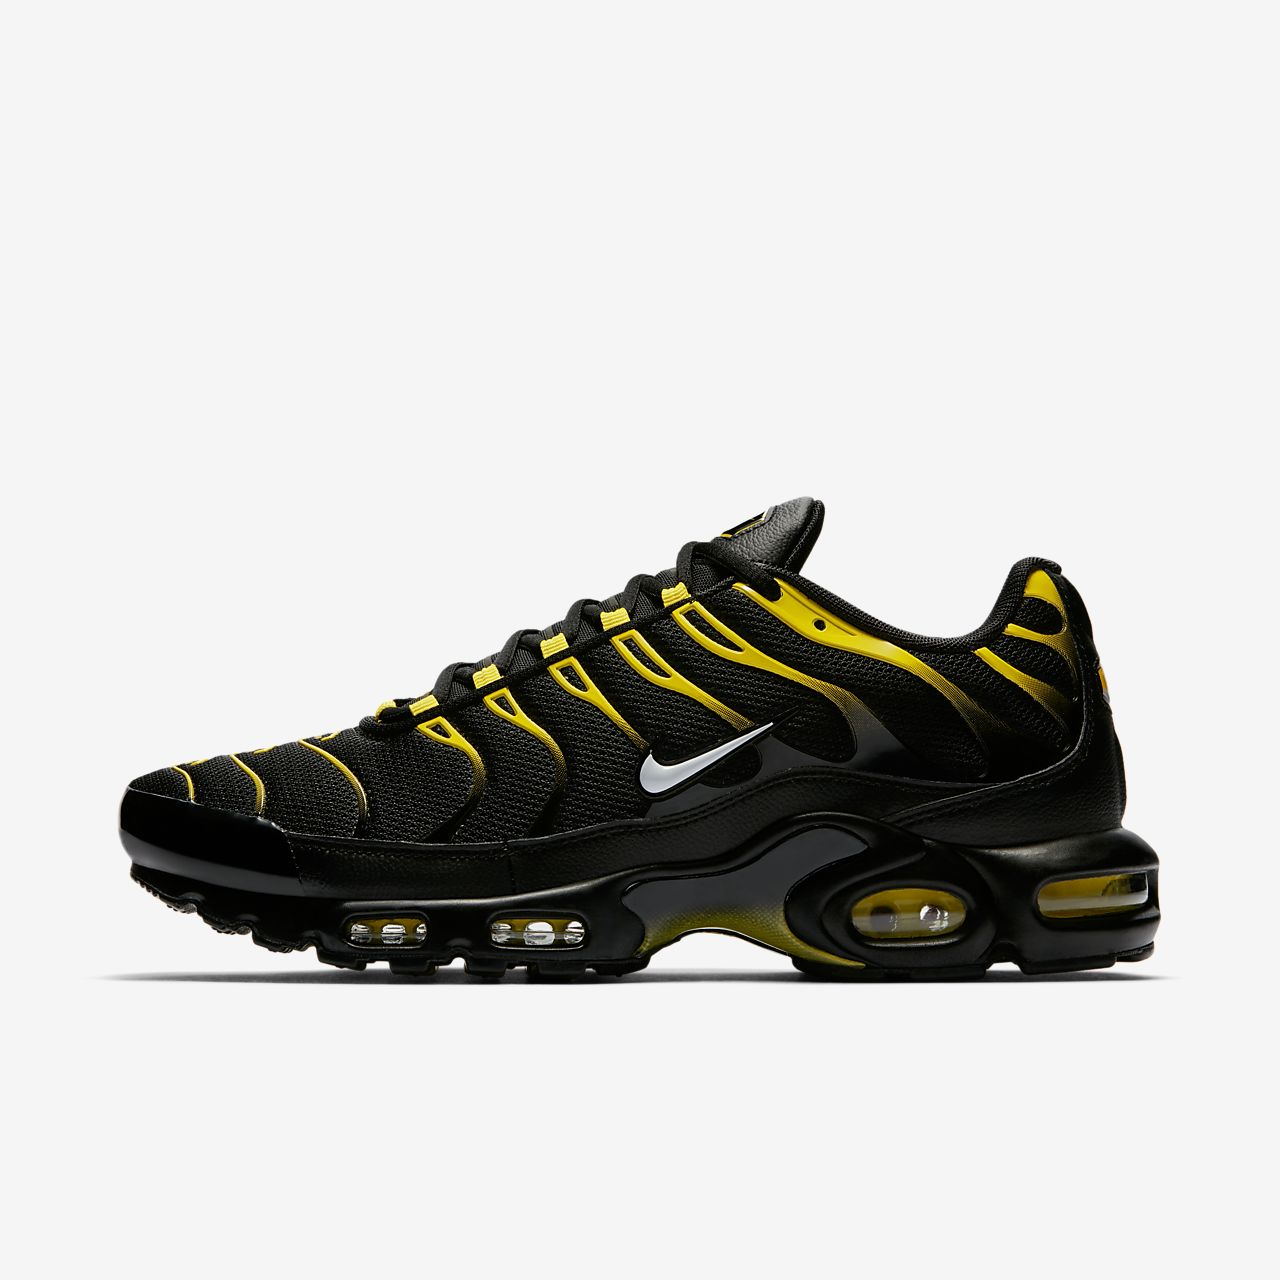 Nike Air Max Plus Tn Accordé Libération Eu De Privilège